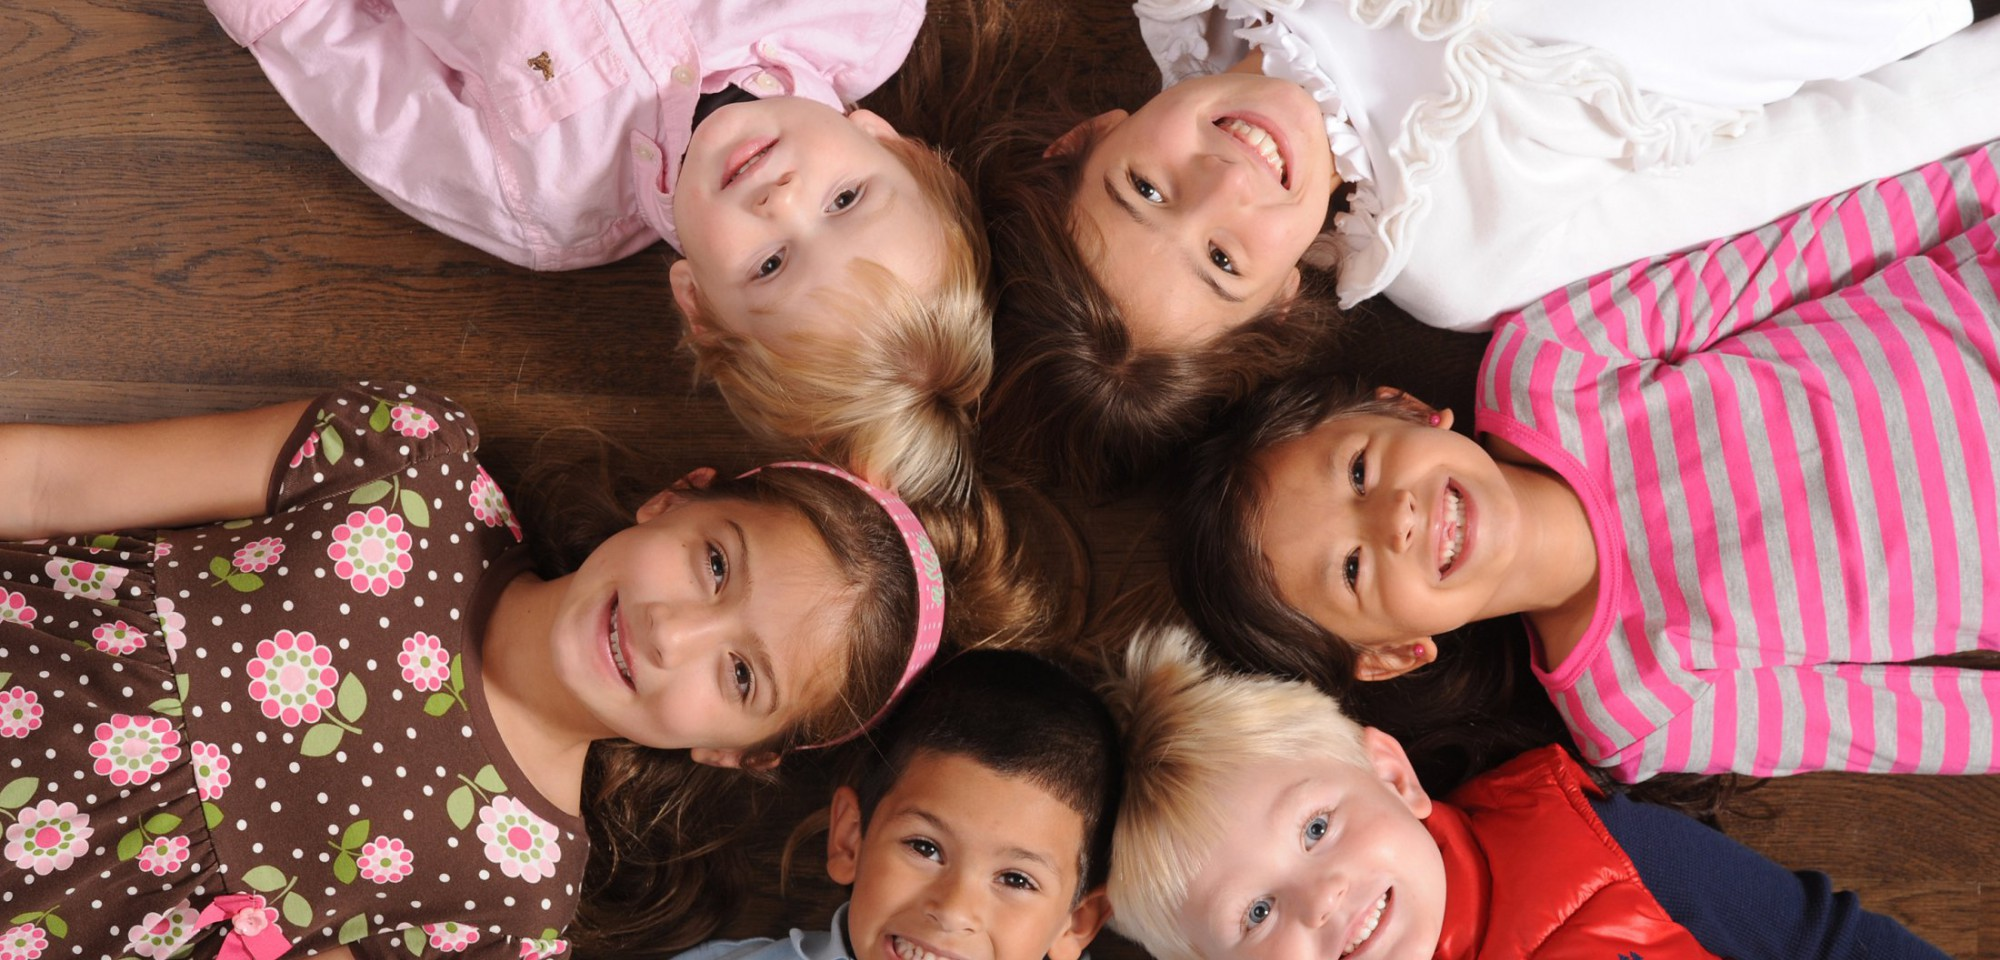 Tina S. Merhoff, DDS & Associates Pediatric Dentistry